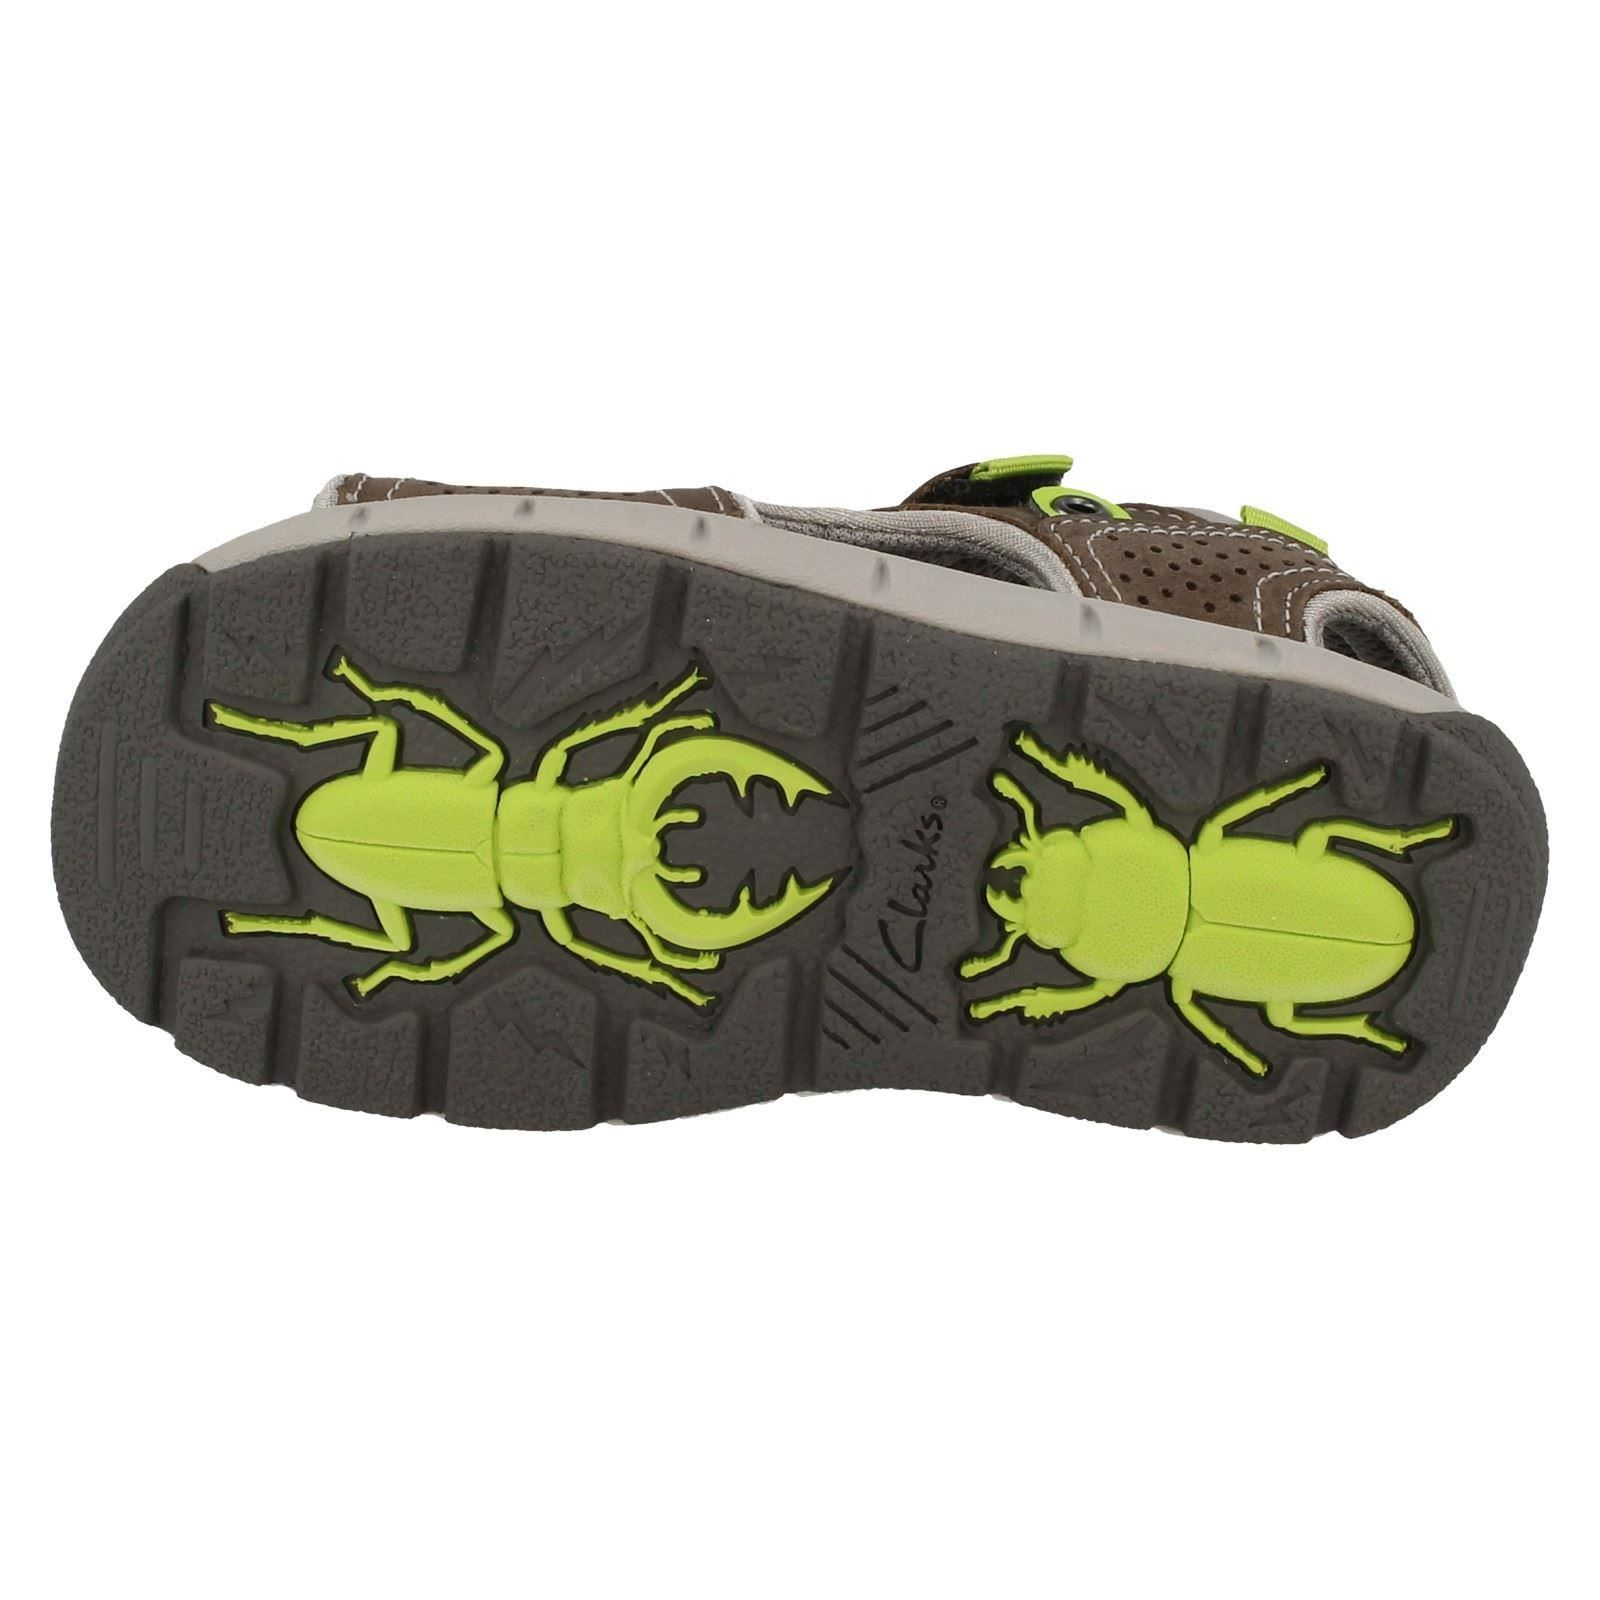 15f7a42f6b6 Infant//Junior Boys Clarks Jolly Wild Casual Summer Sandals